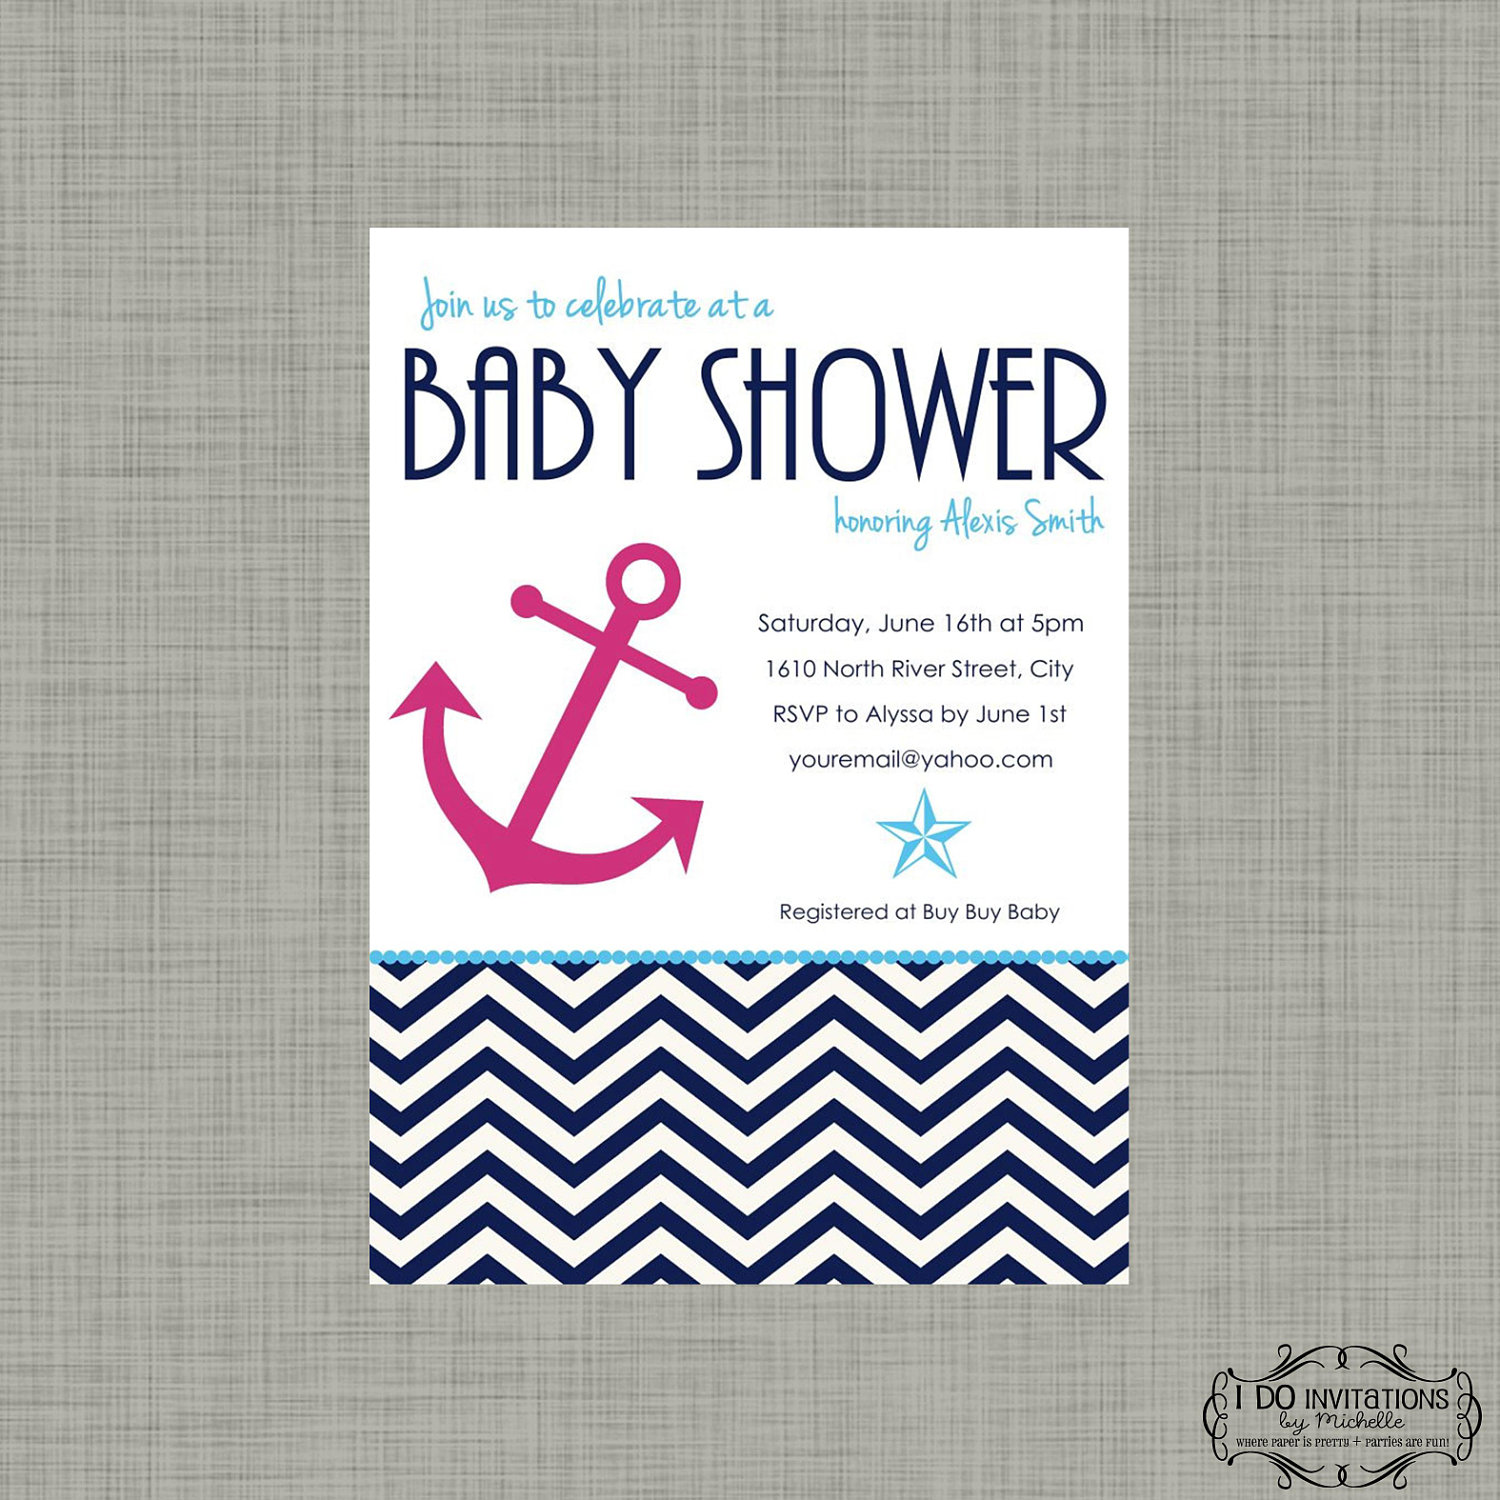 Sailor Baby Shower Invitations was nice invitations sample